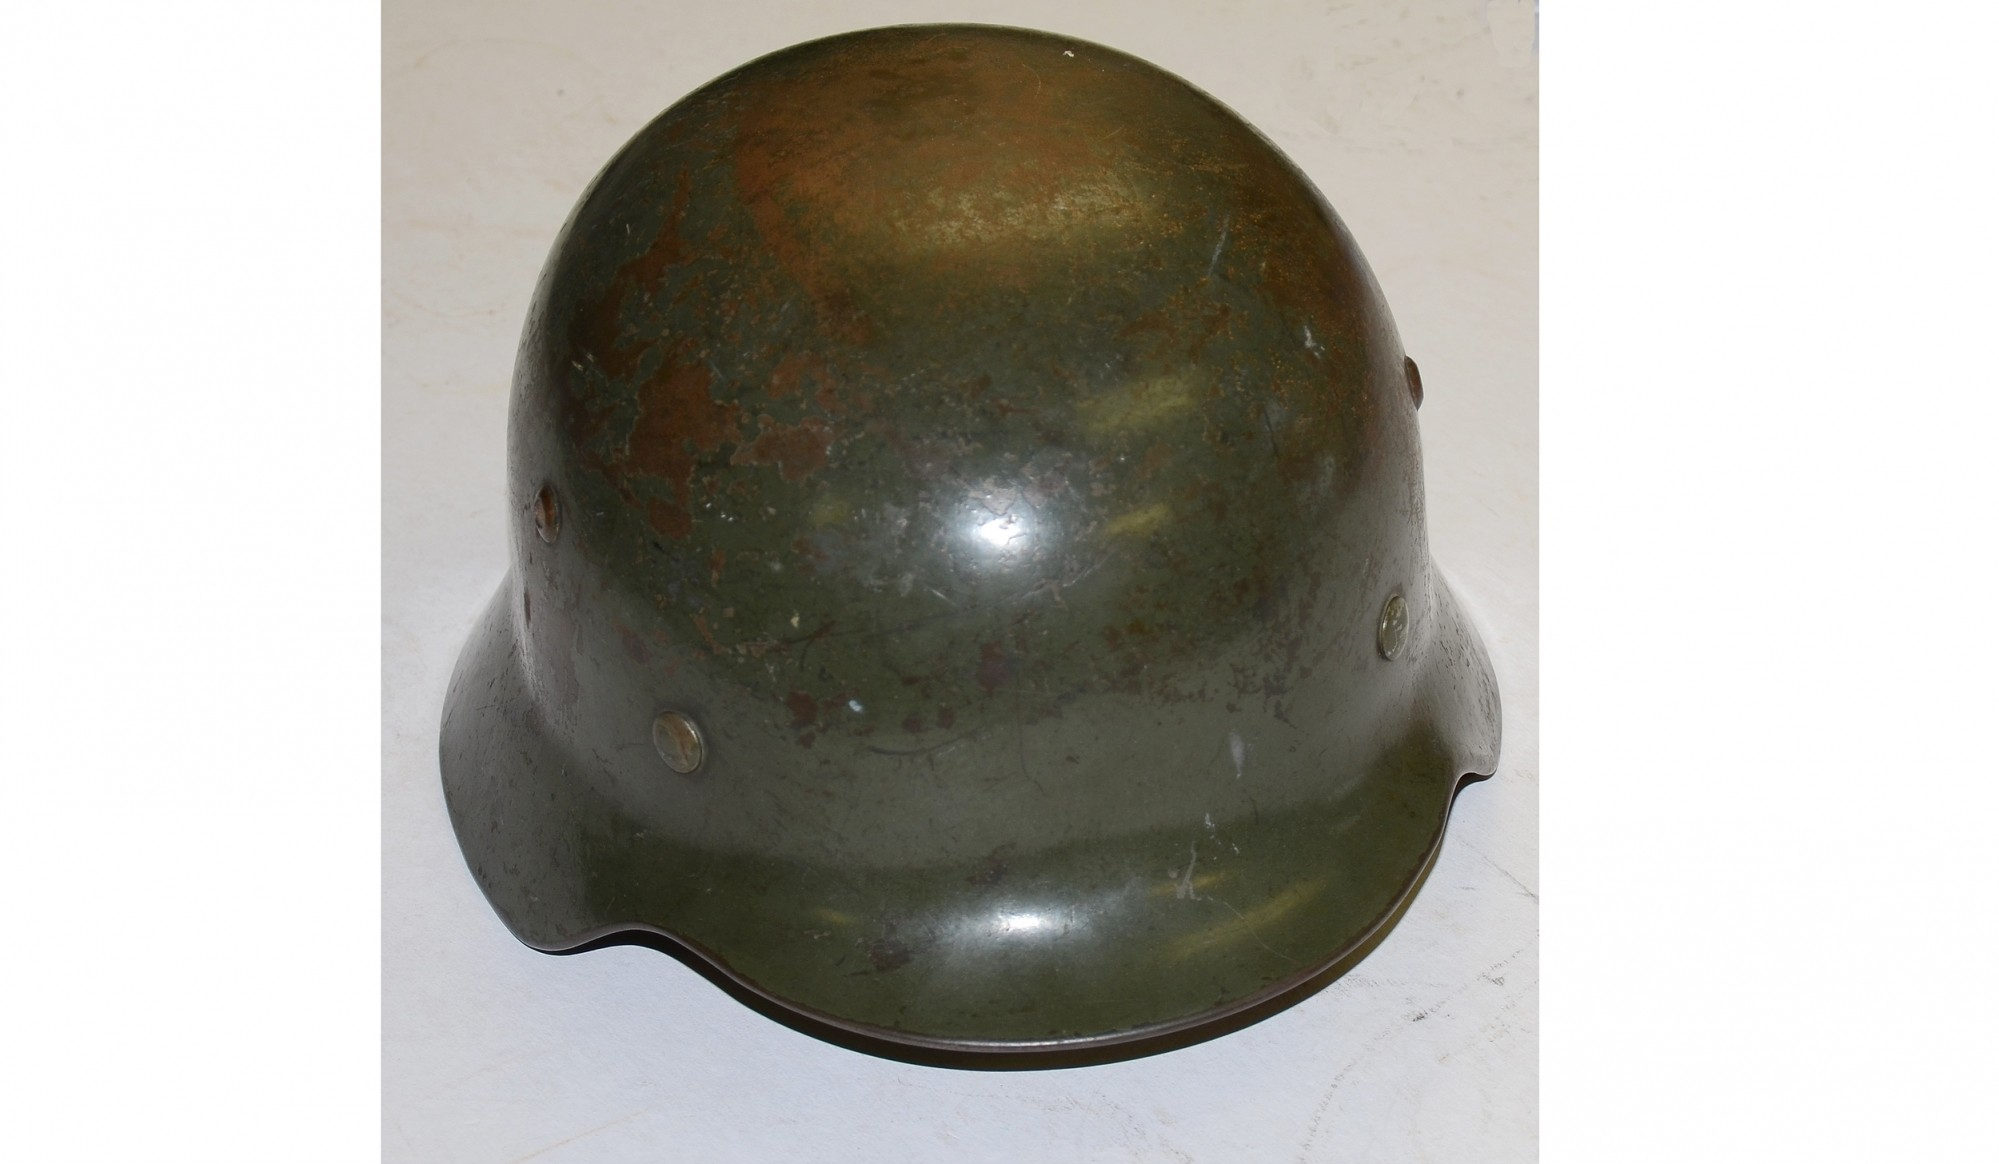 MODEL 1935 SINGLE DECAL GERMAN ARMY HELMET WITH ATTRIBUTION TO AMERICAN CAPTOR IN 6TH ARMORED DIVISION